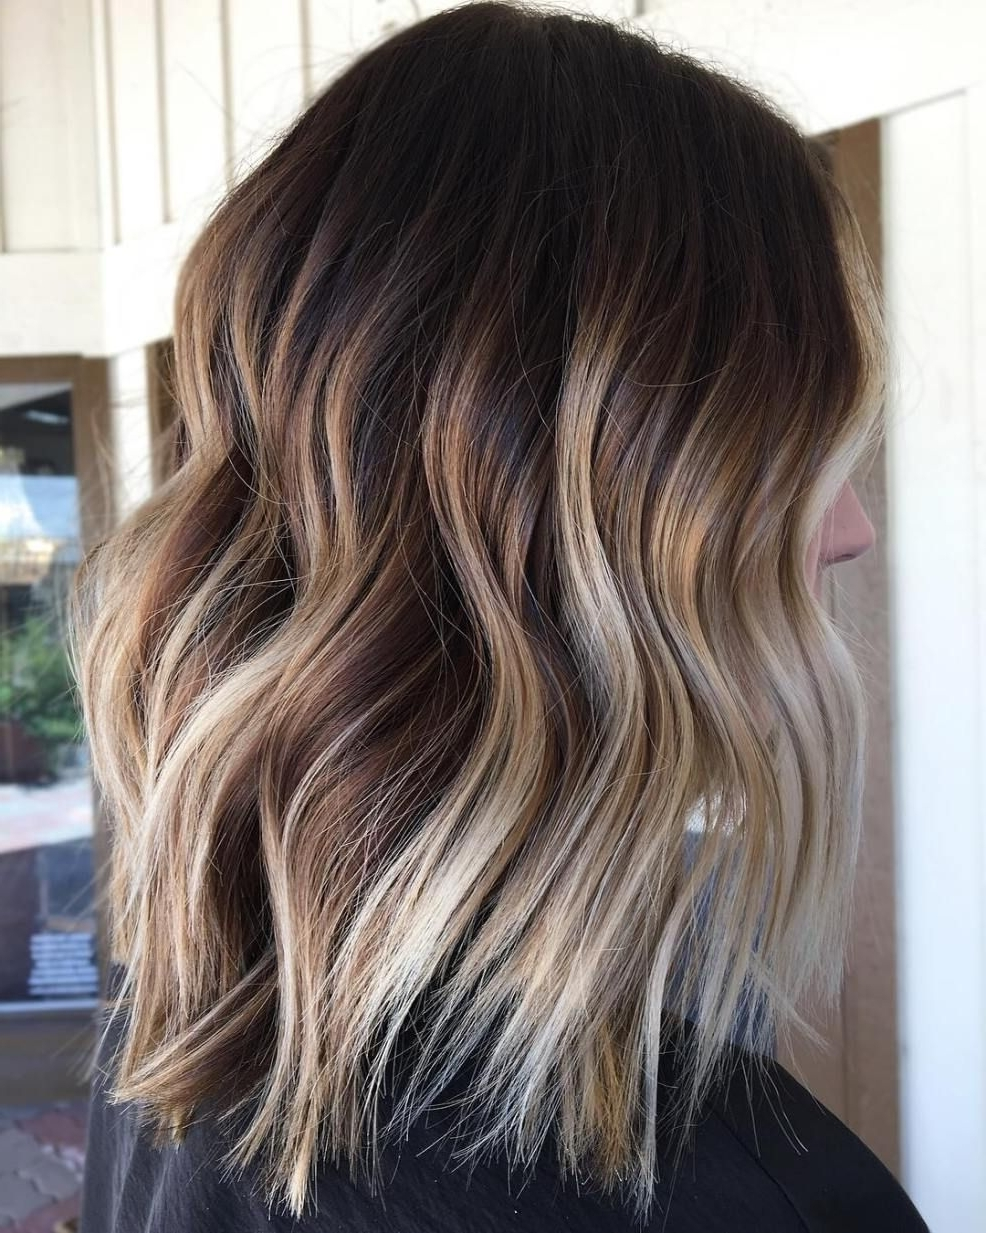 Pinterest Intended For Widely Used Ombre Ed Blonde Lob Hairstyles (View 7 of 20)